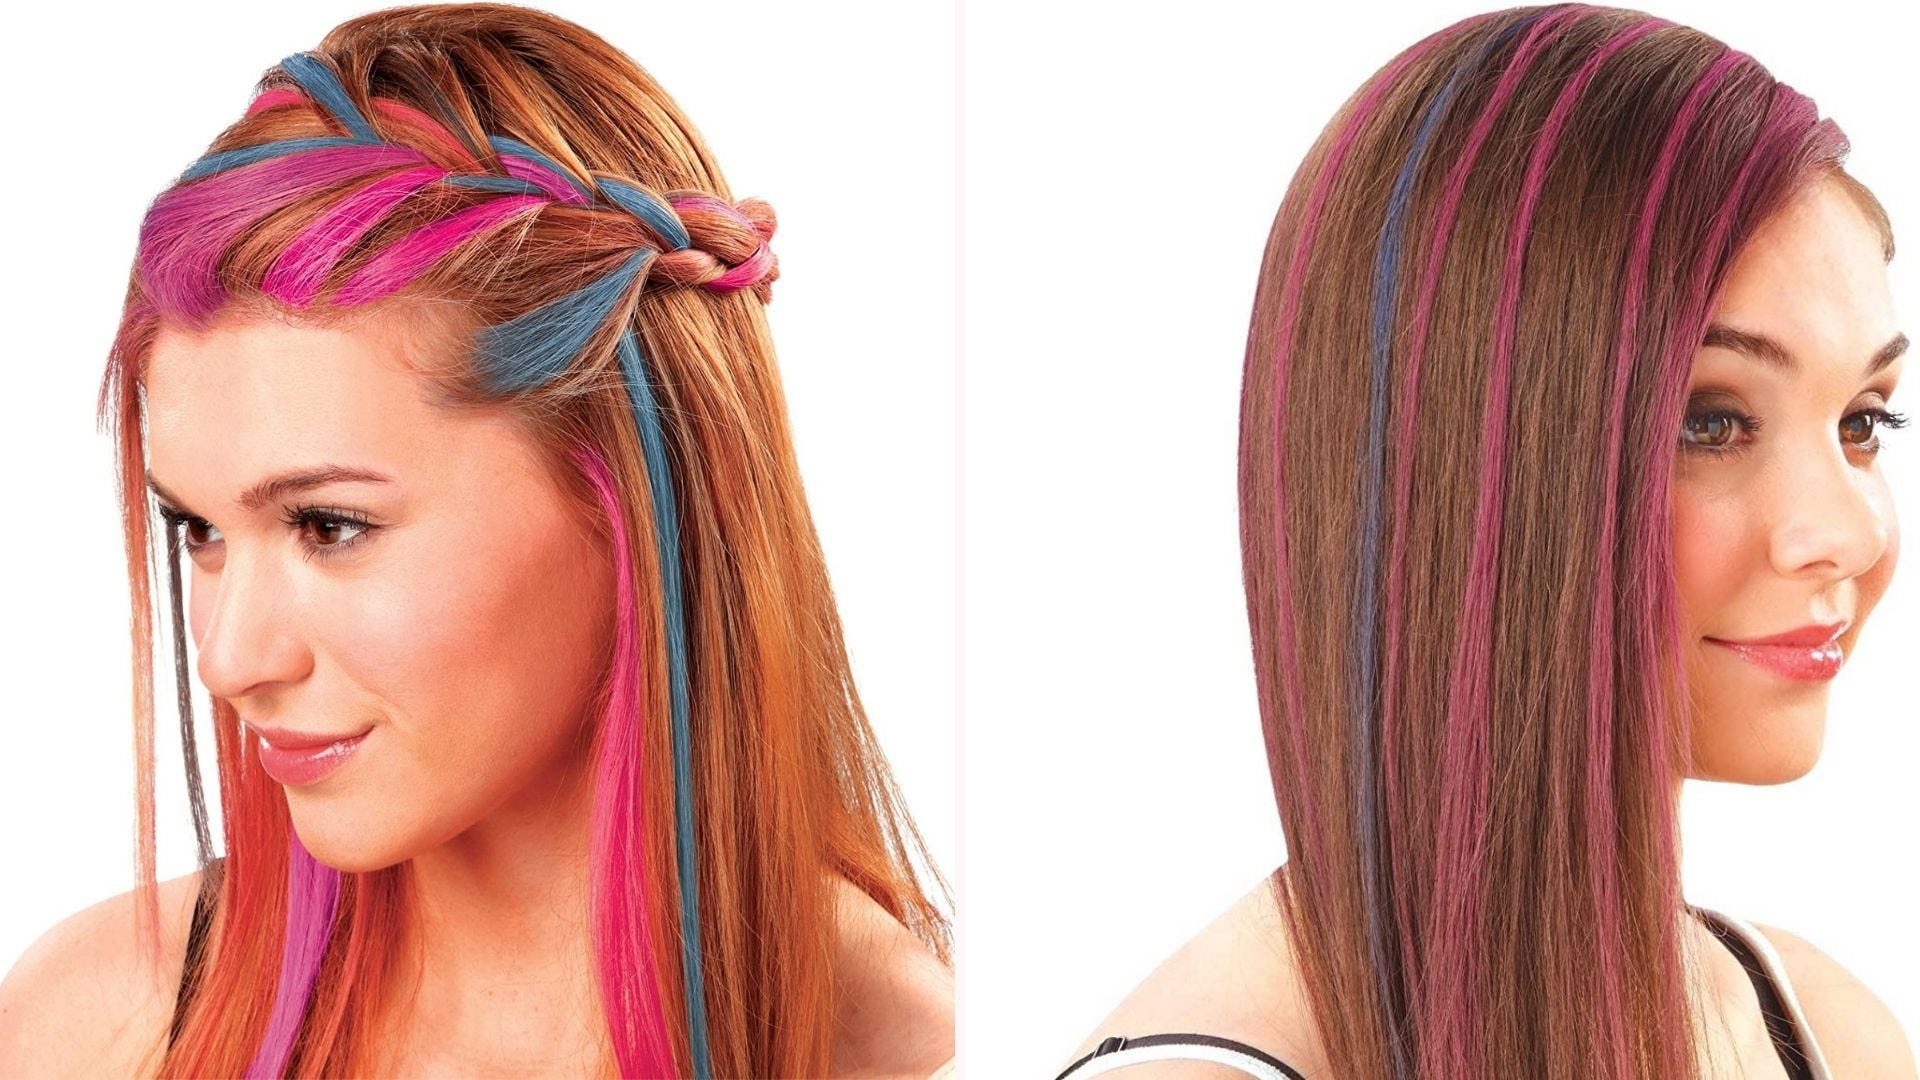 Two women with multicolored highlights in their hair